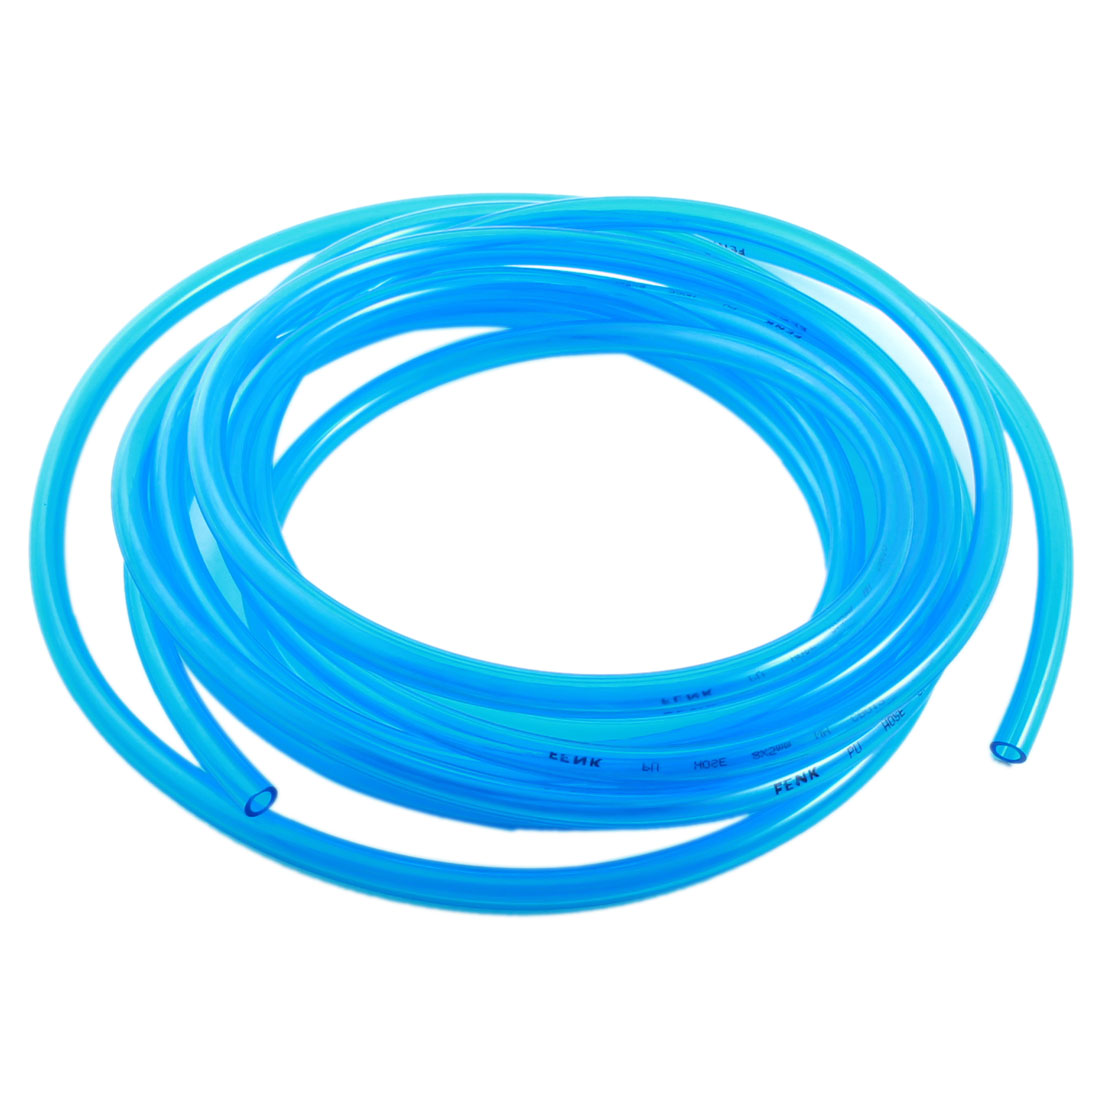 5Meter 5x8mm Air Compressor Fuel Gas Petrol Diesel PU Line Tube Hose Clear Blue